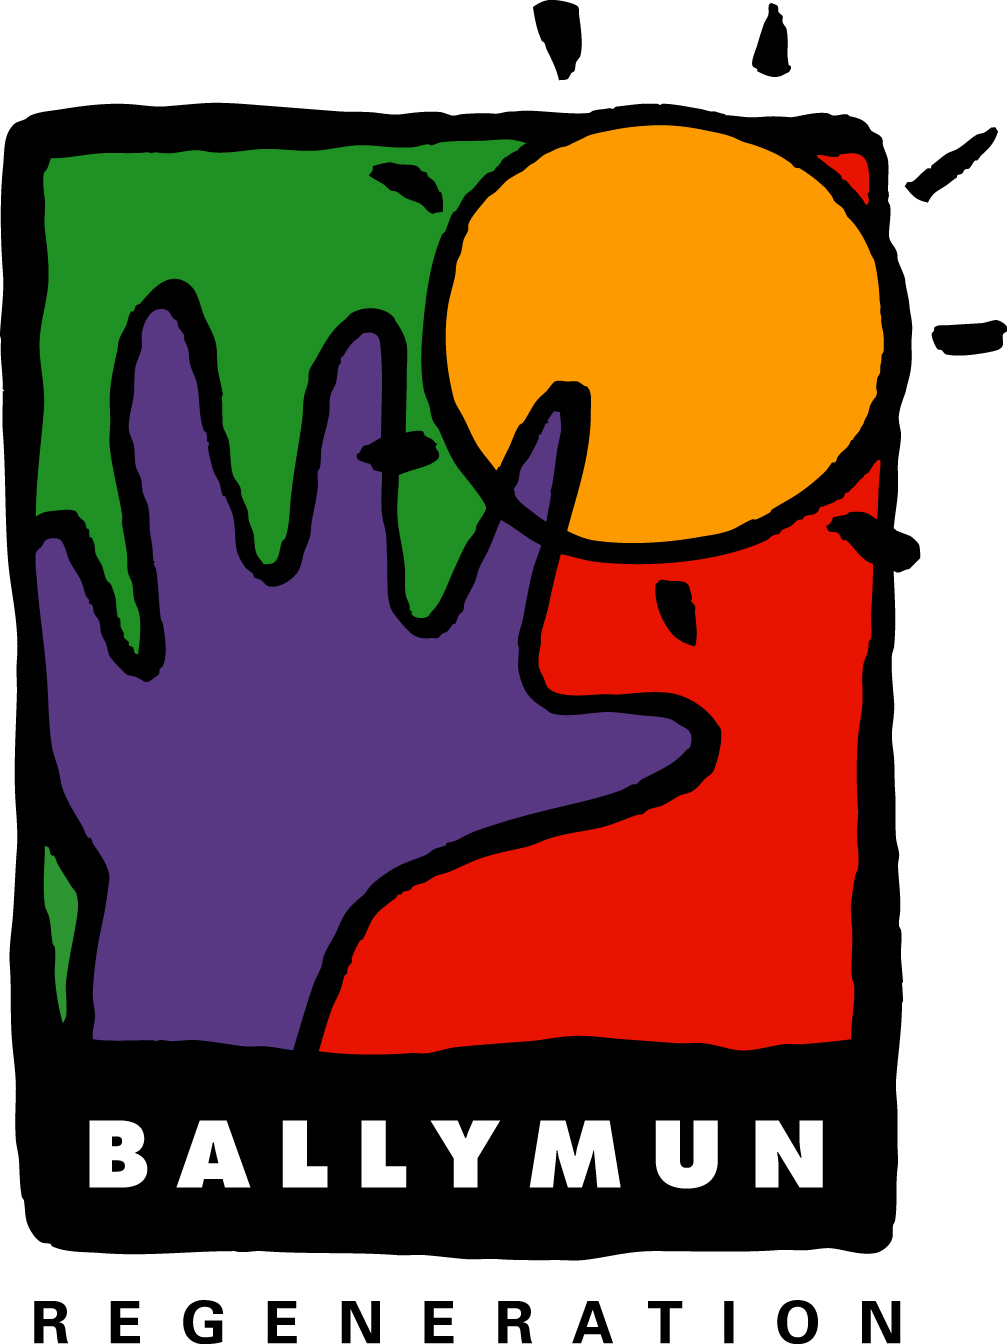 Ballymun Regeneration Ltd